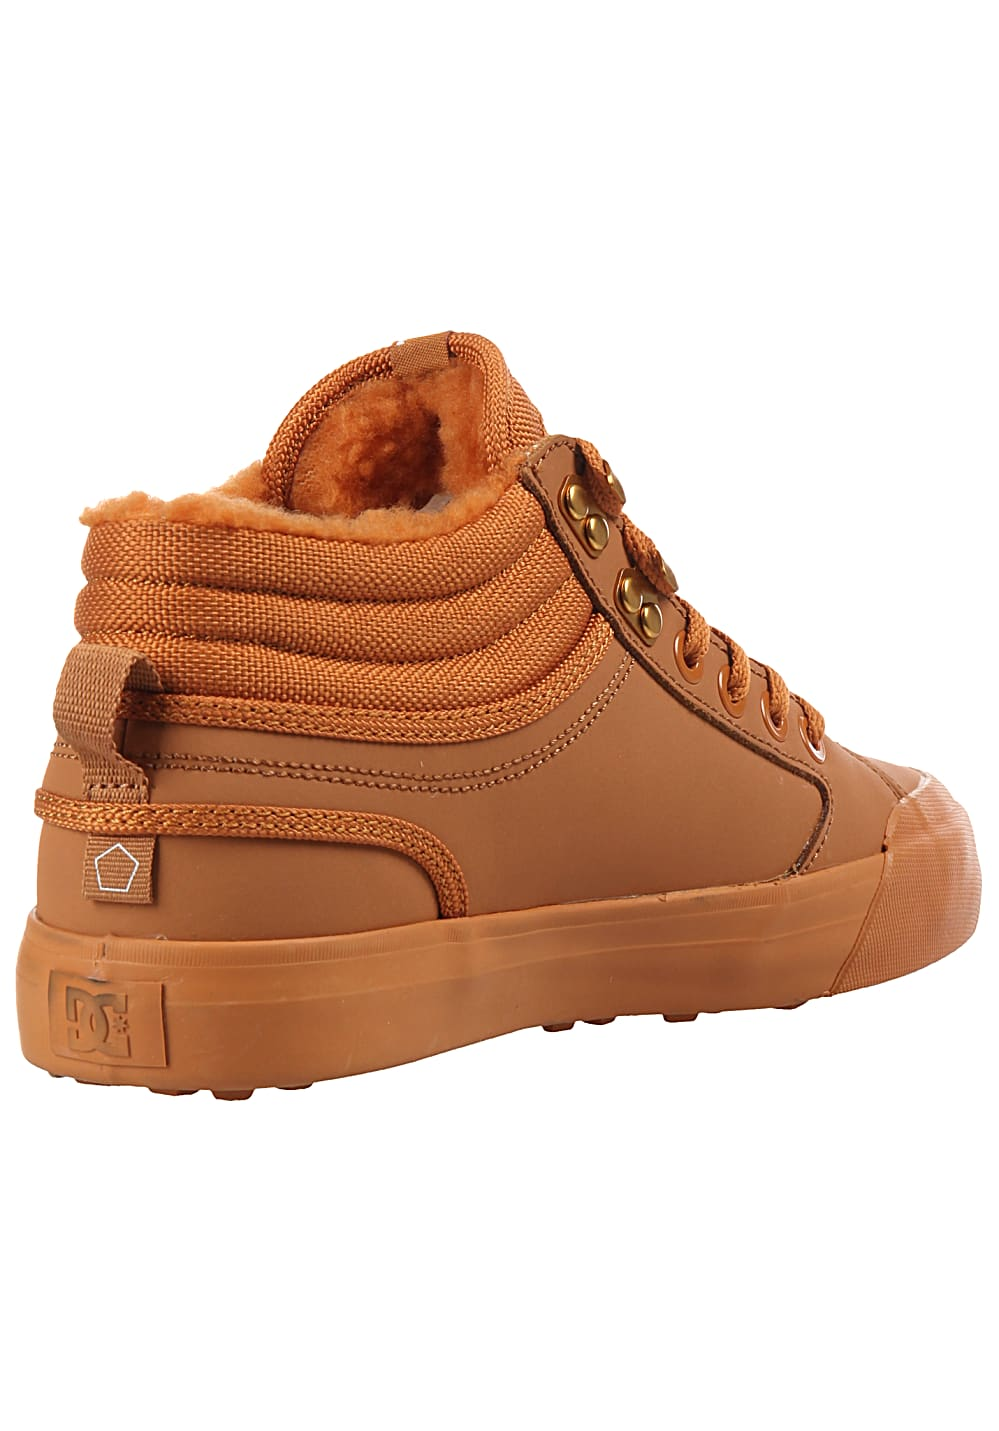 240bebb11 winter sneaker damen